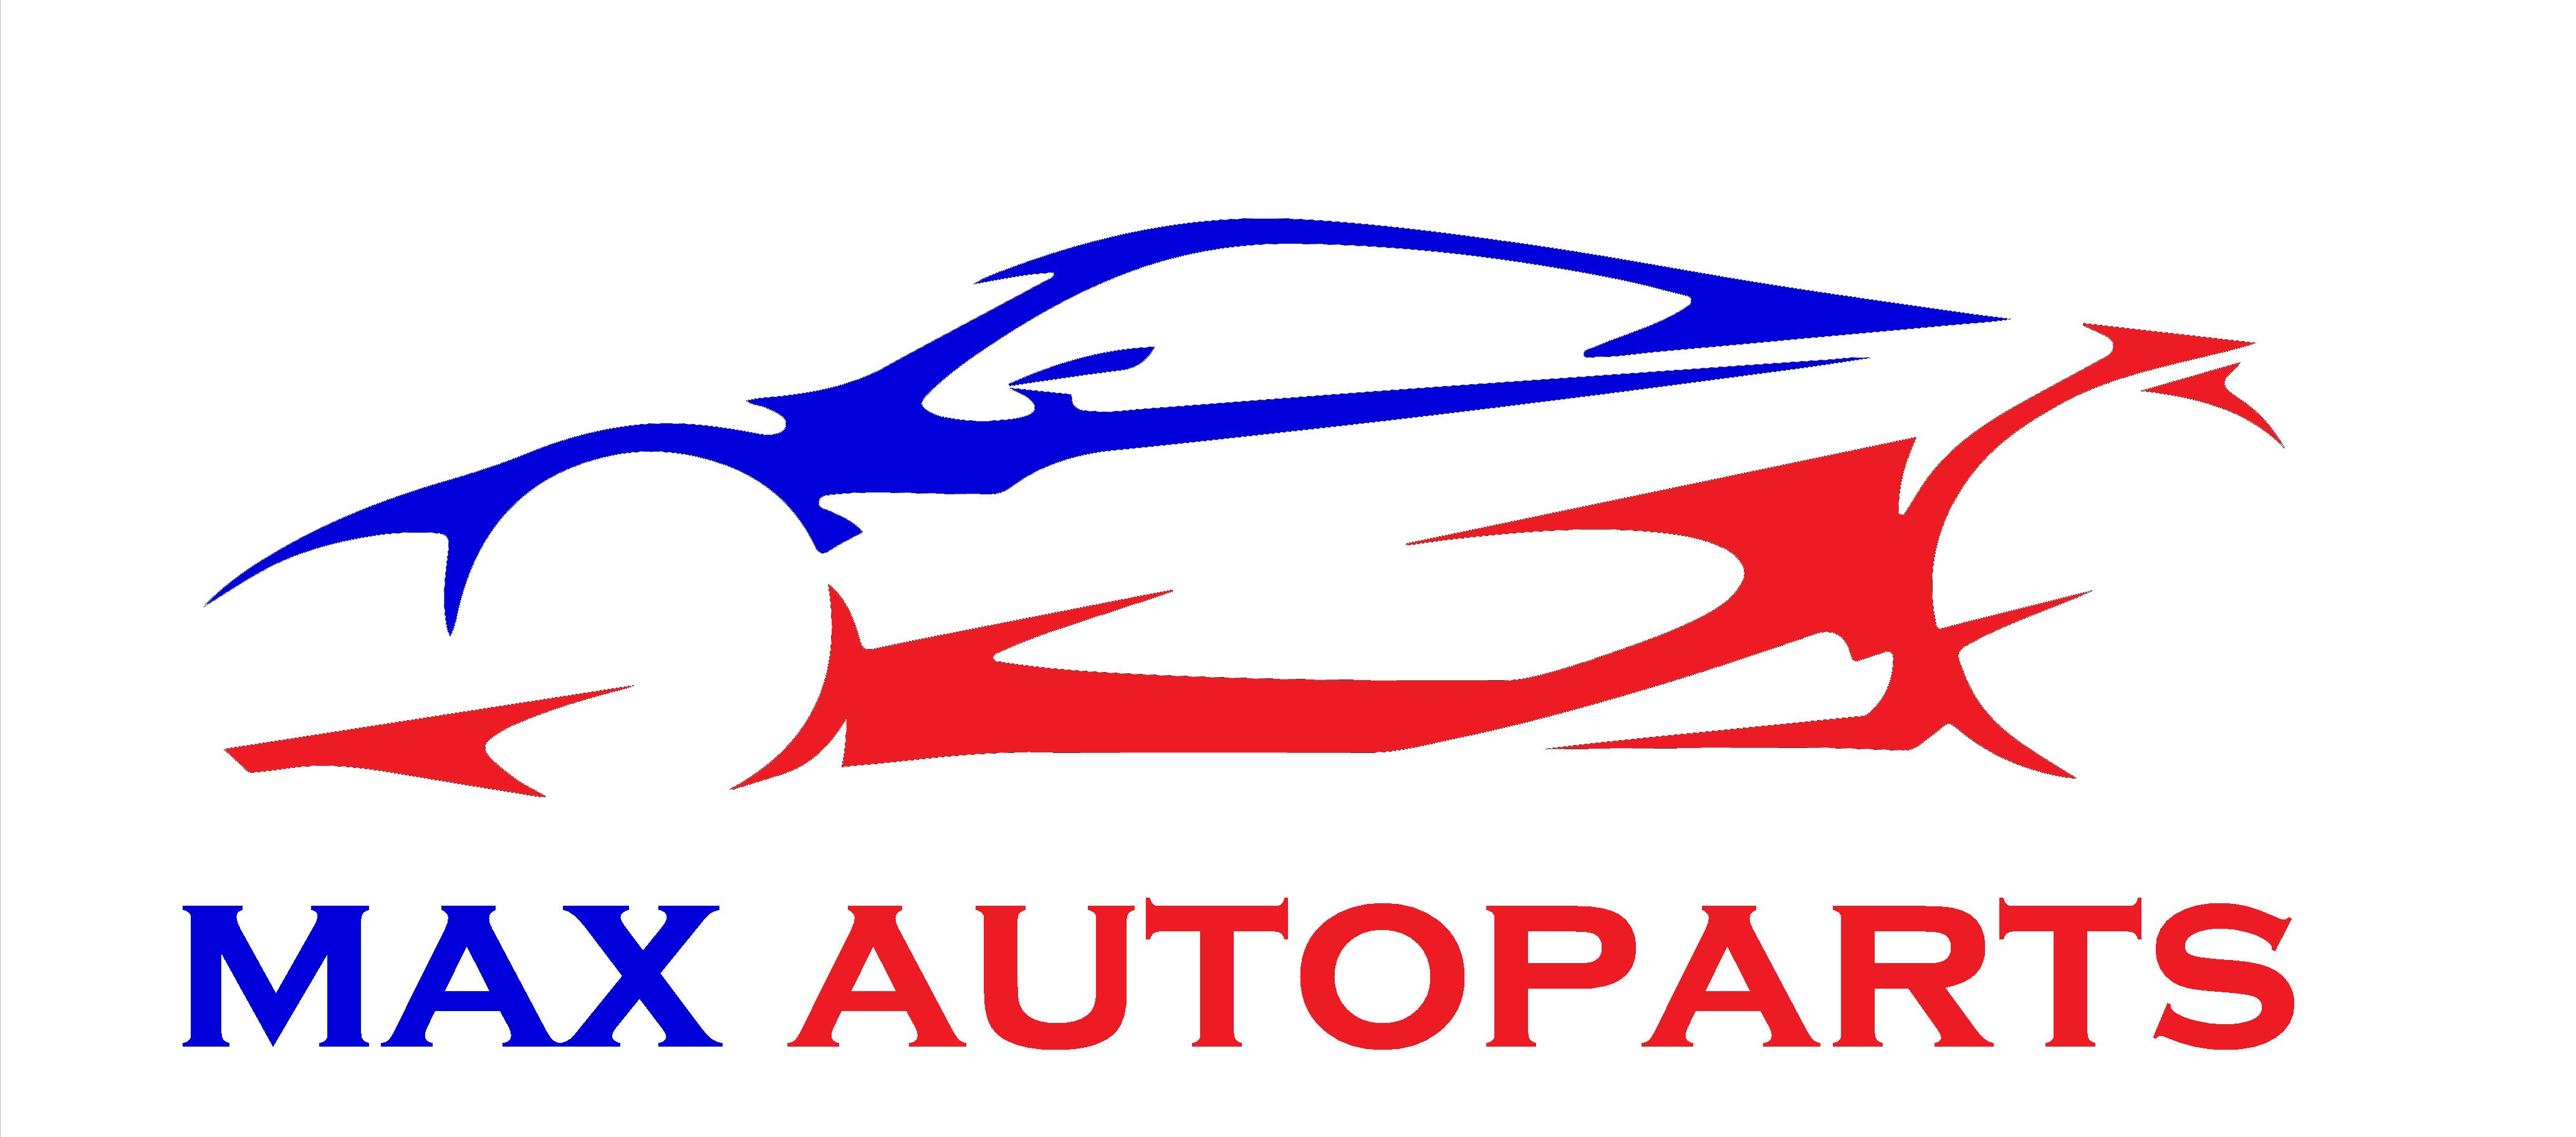 Max Auto Parts Ltd company logo